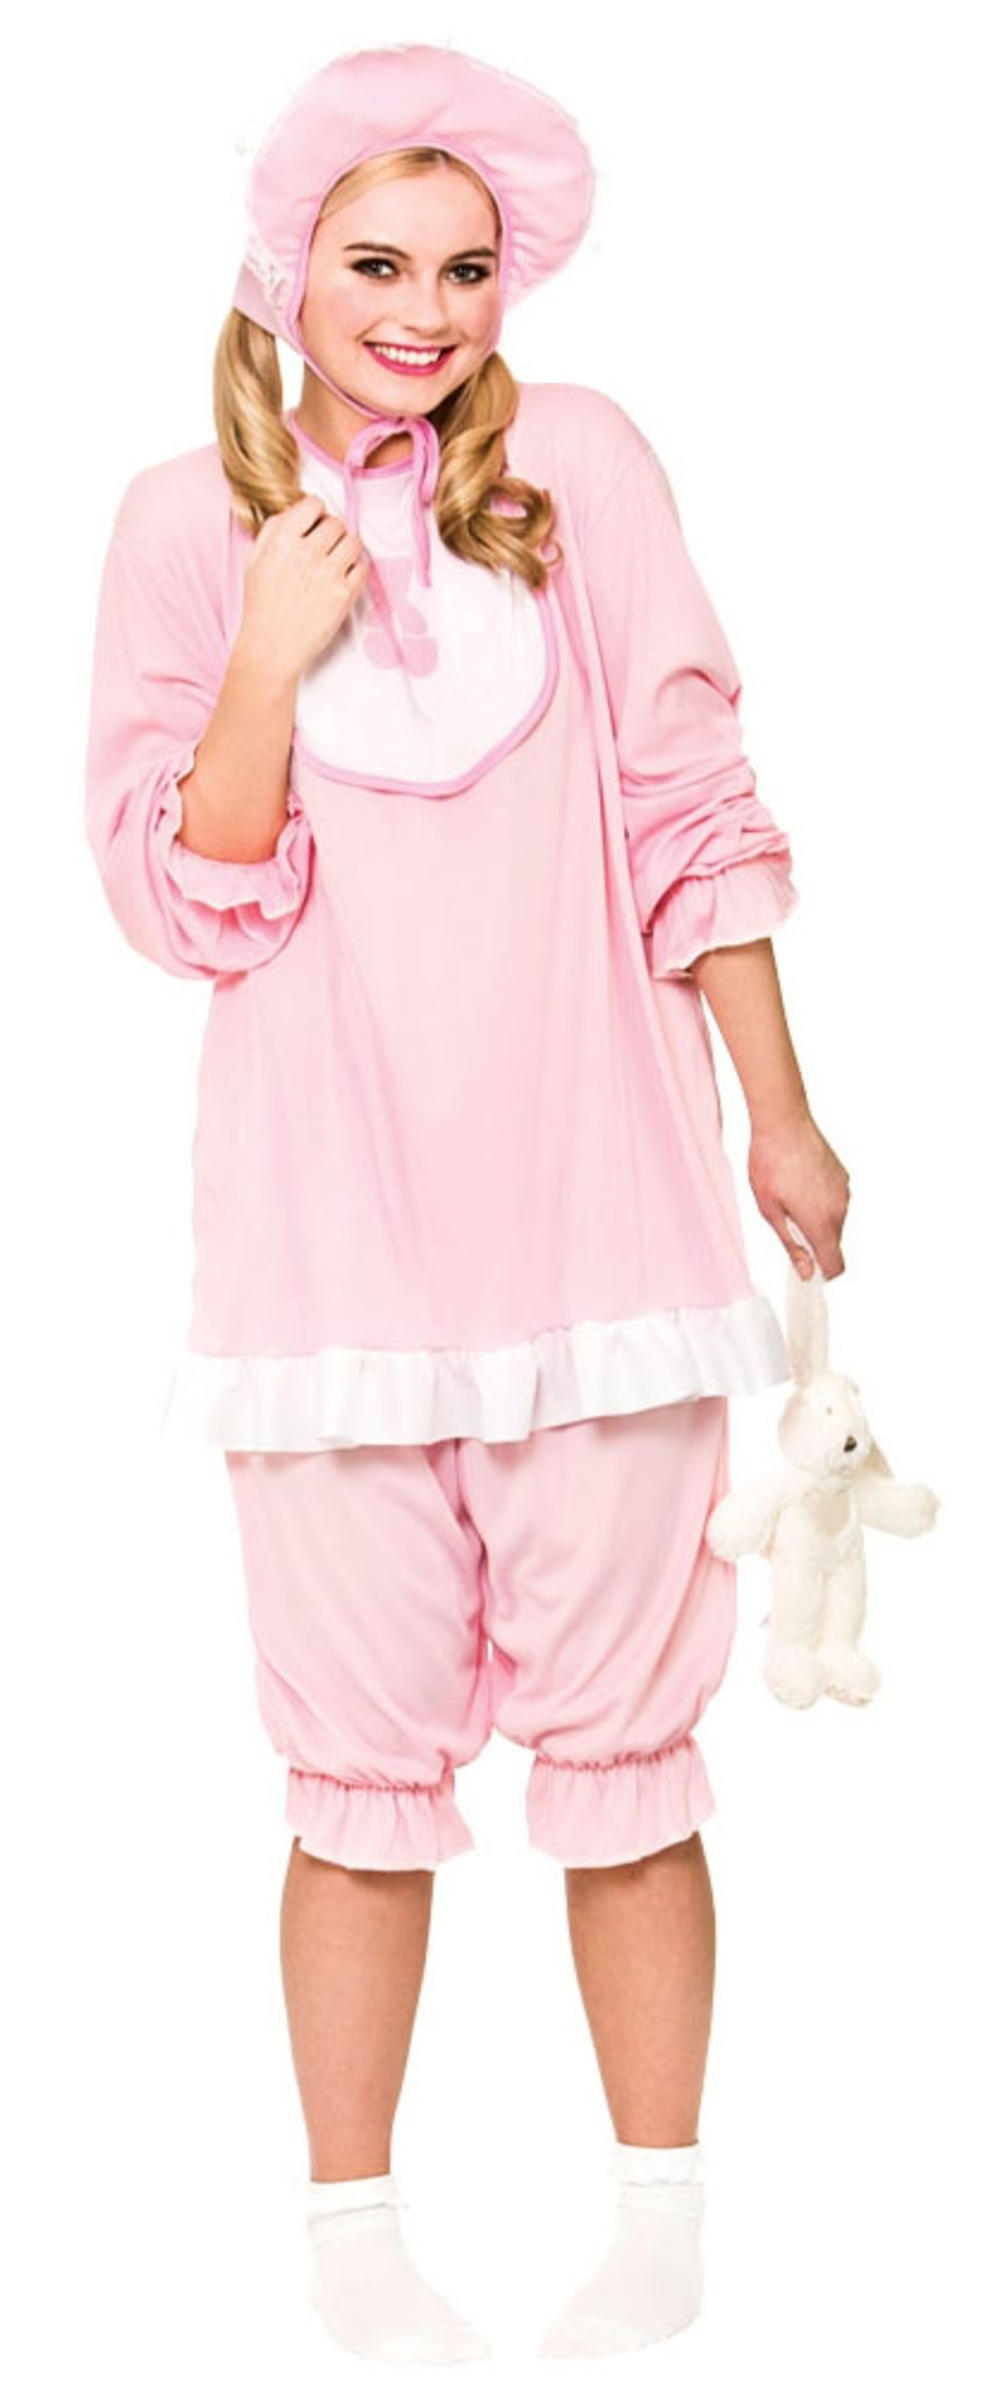 Pink Cry Baby Adults Fancy Dress Fun Novelty Babies Suit Costume Unisex Outfit